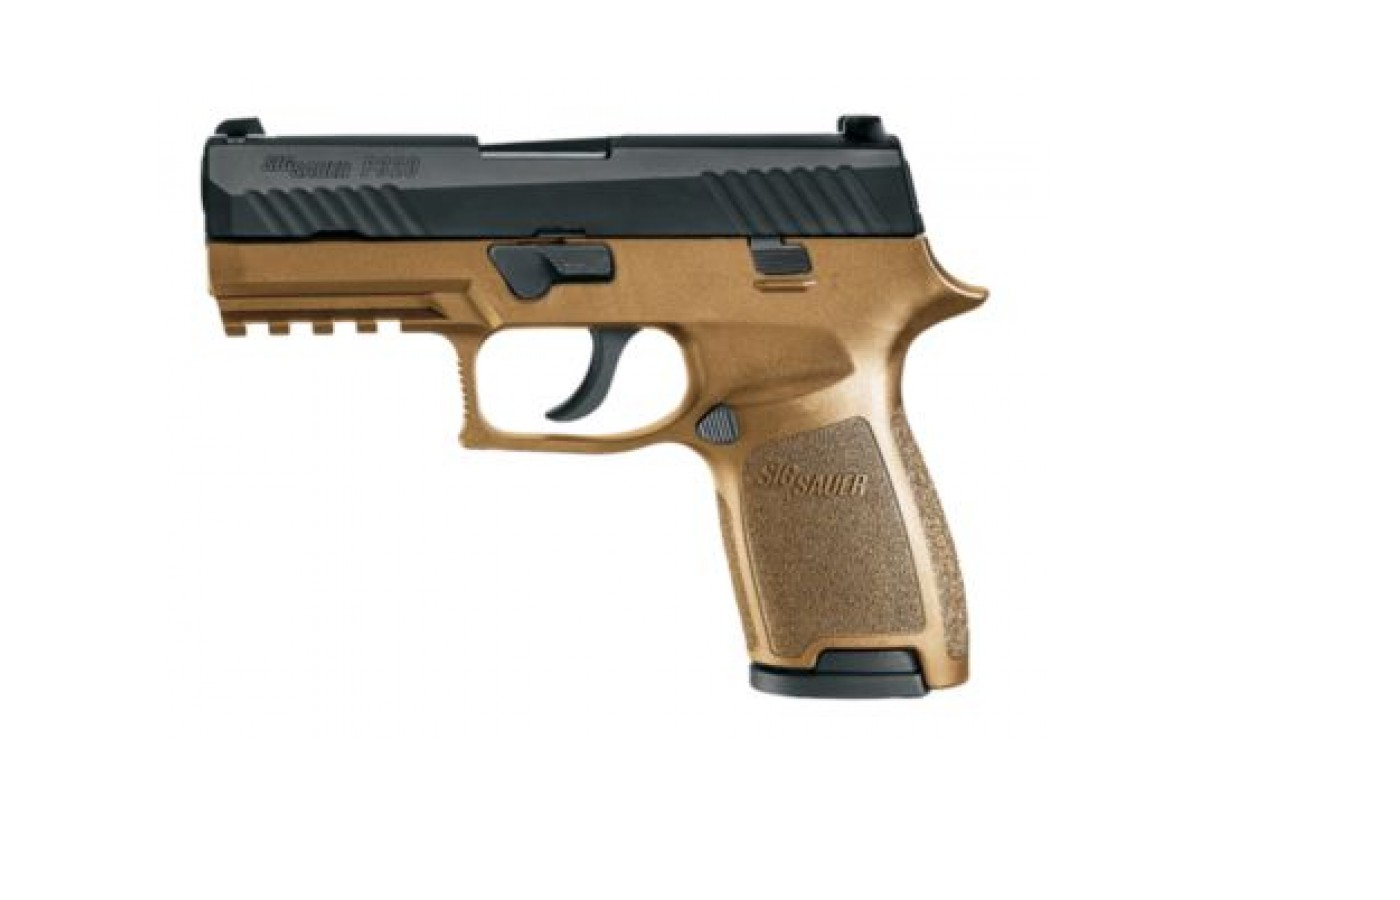 The Sig Sauer P320 is reliable and accurate.